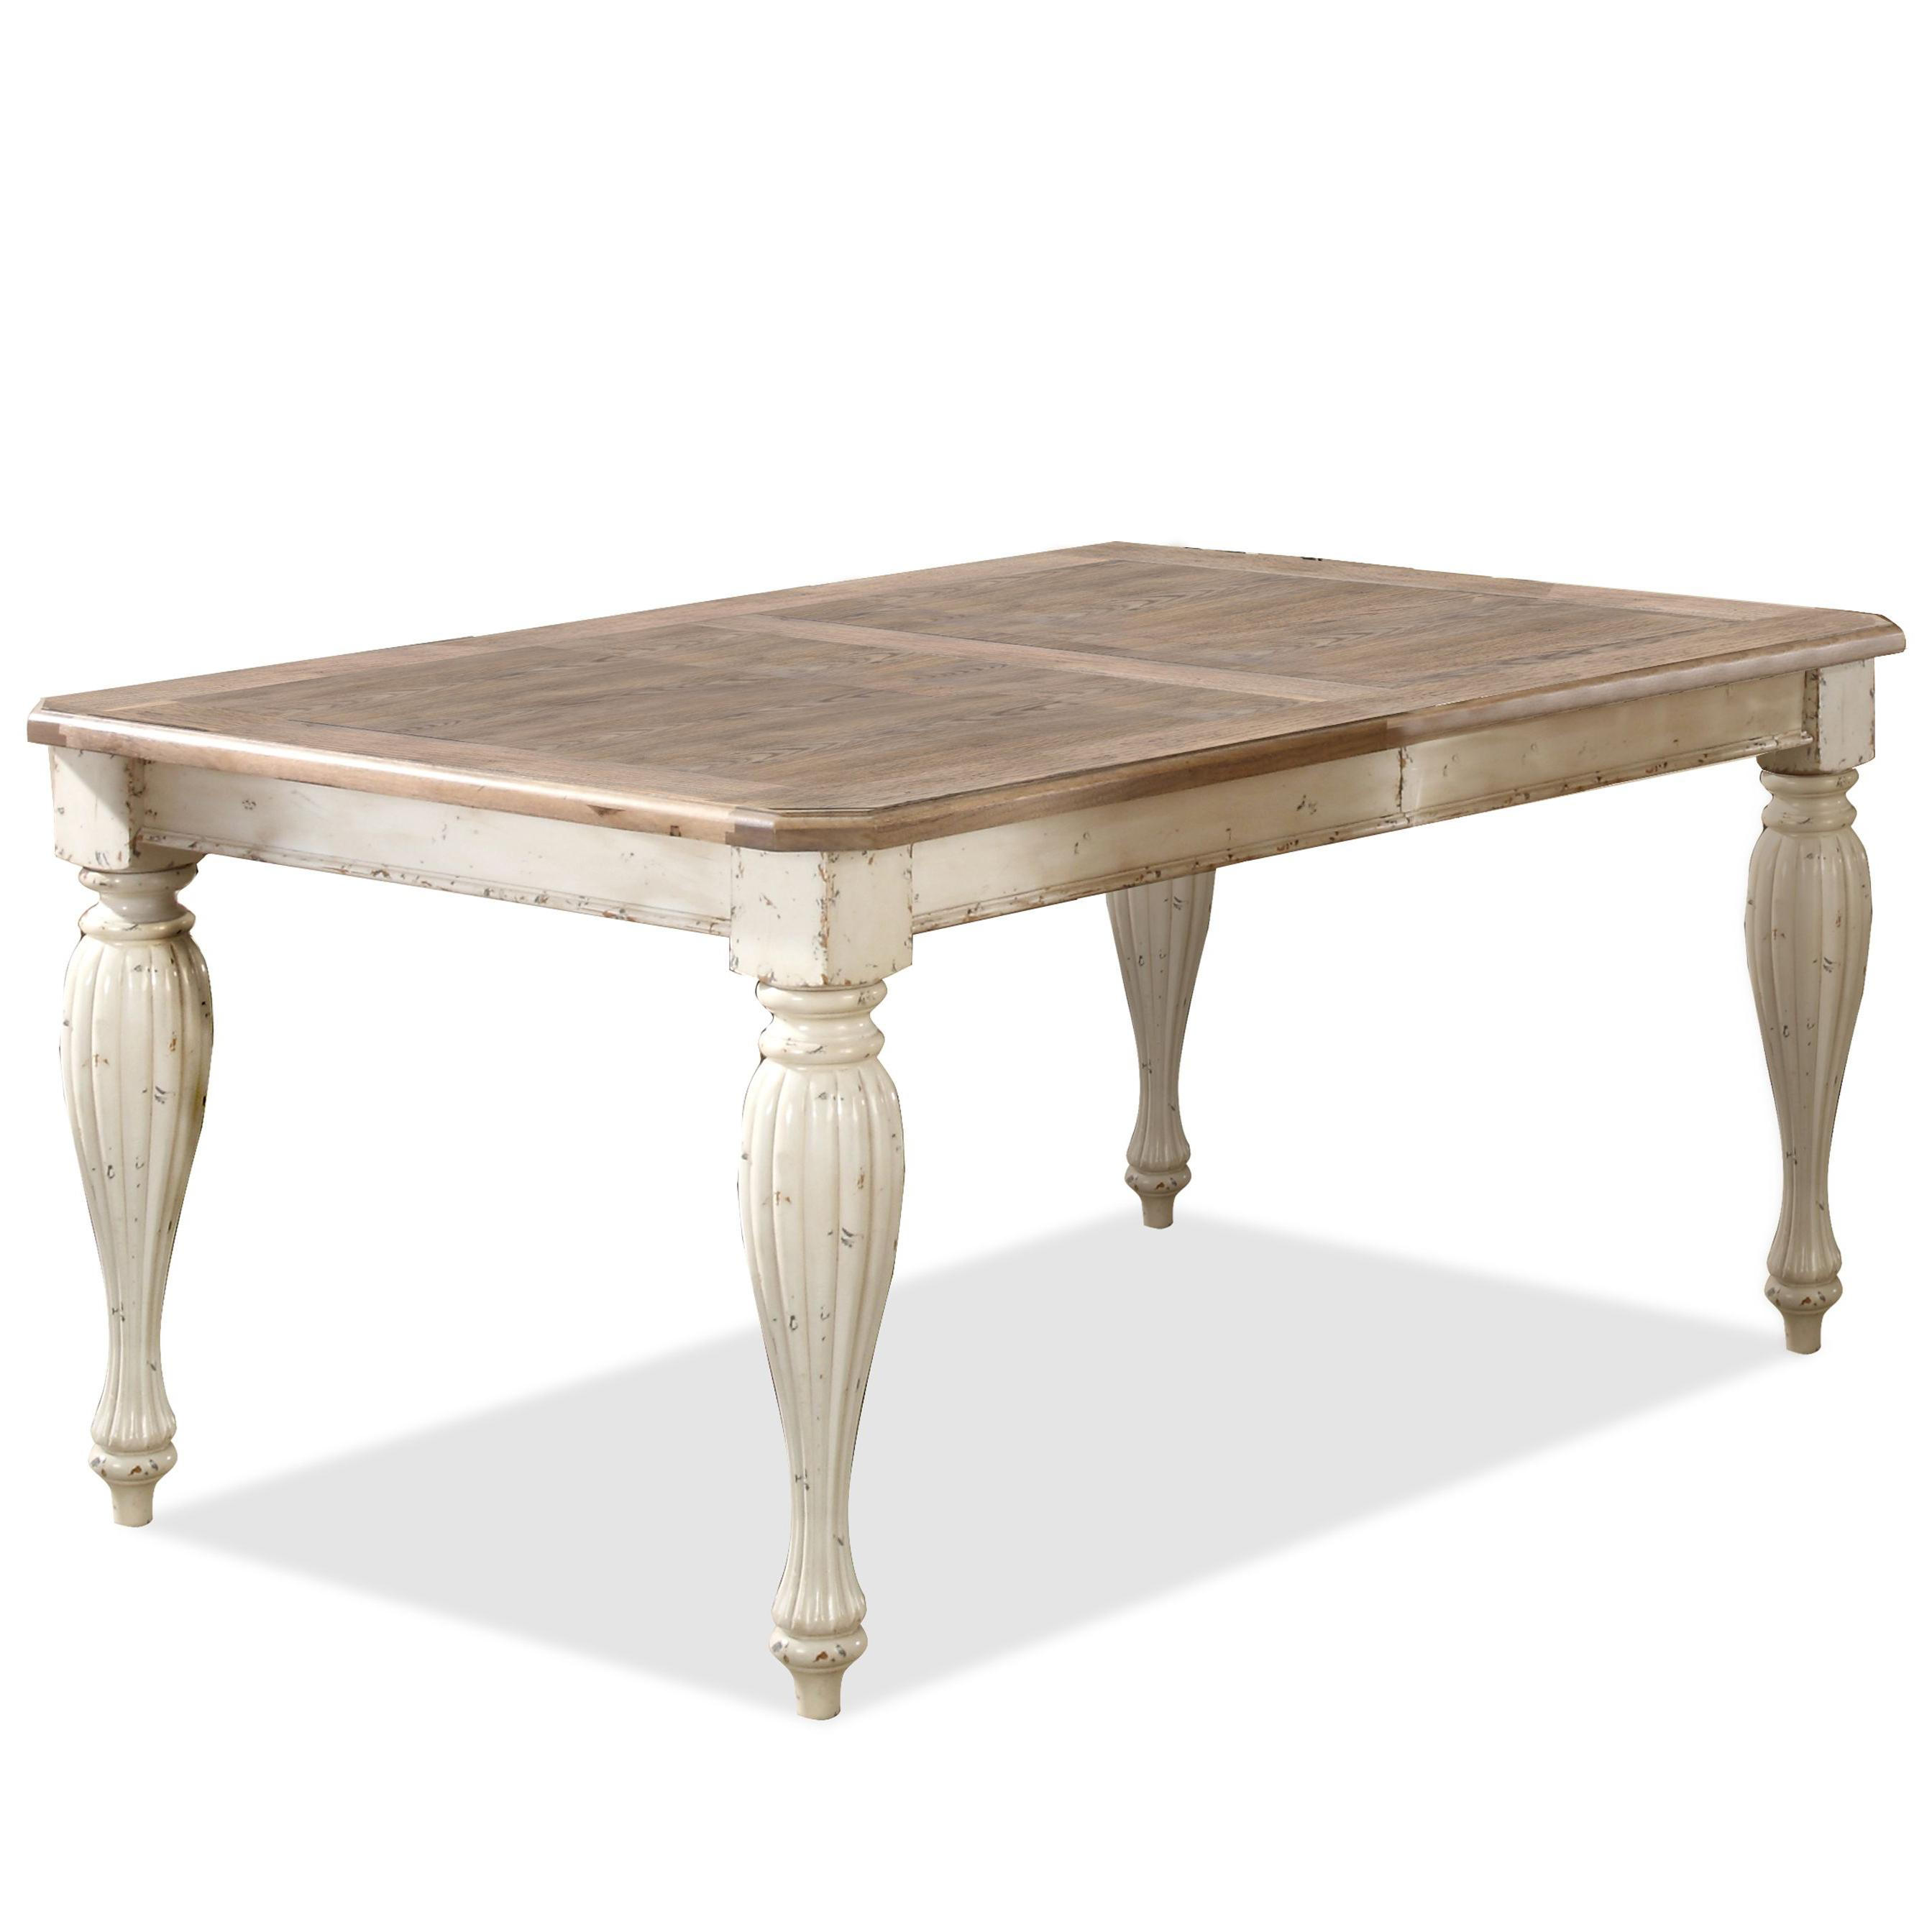 "Rectangular Dining Room Tables With Leaves: Rectangular Leg Dining Table With 18"" Leaf By Riverside"